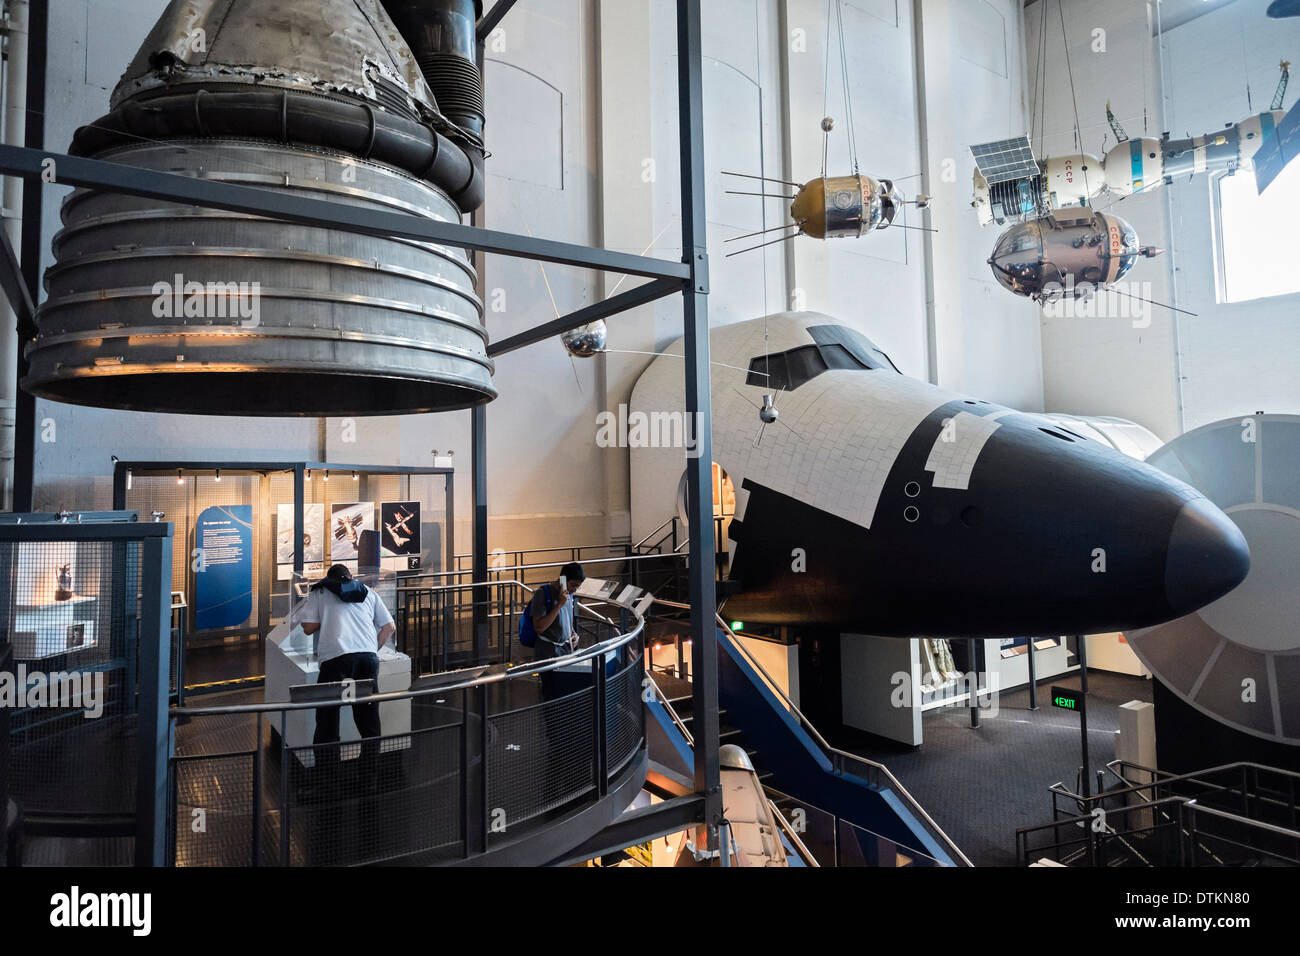 Powerhouse Stock Photos & Powerhouse Stock Images - Alamy